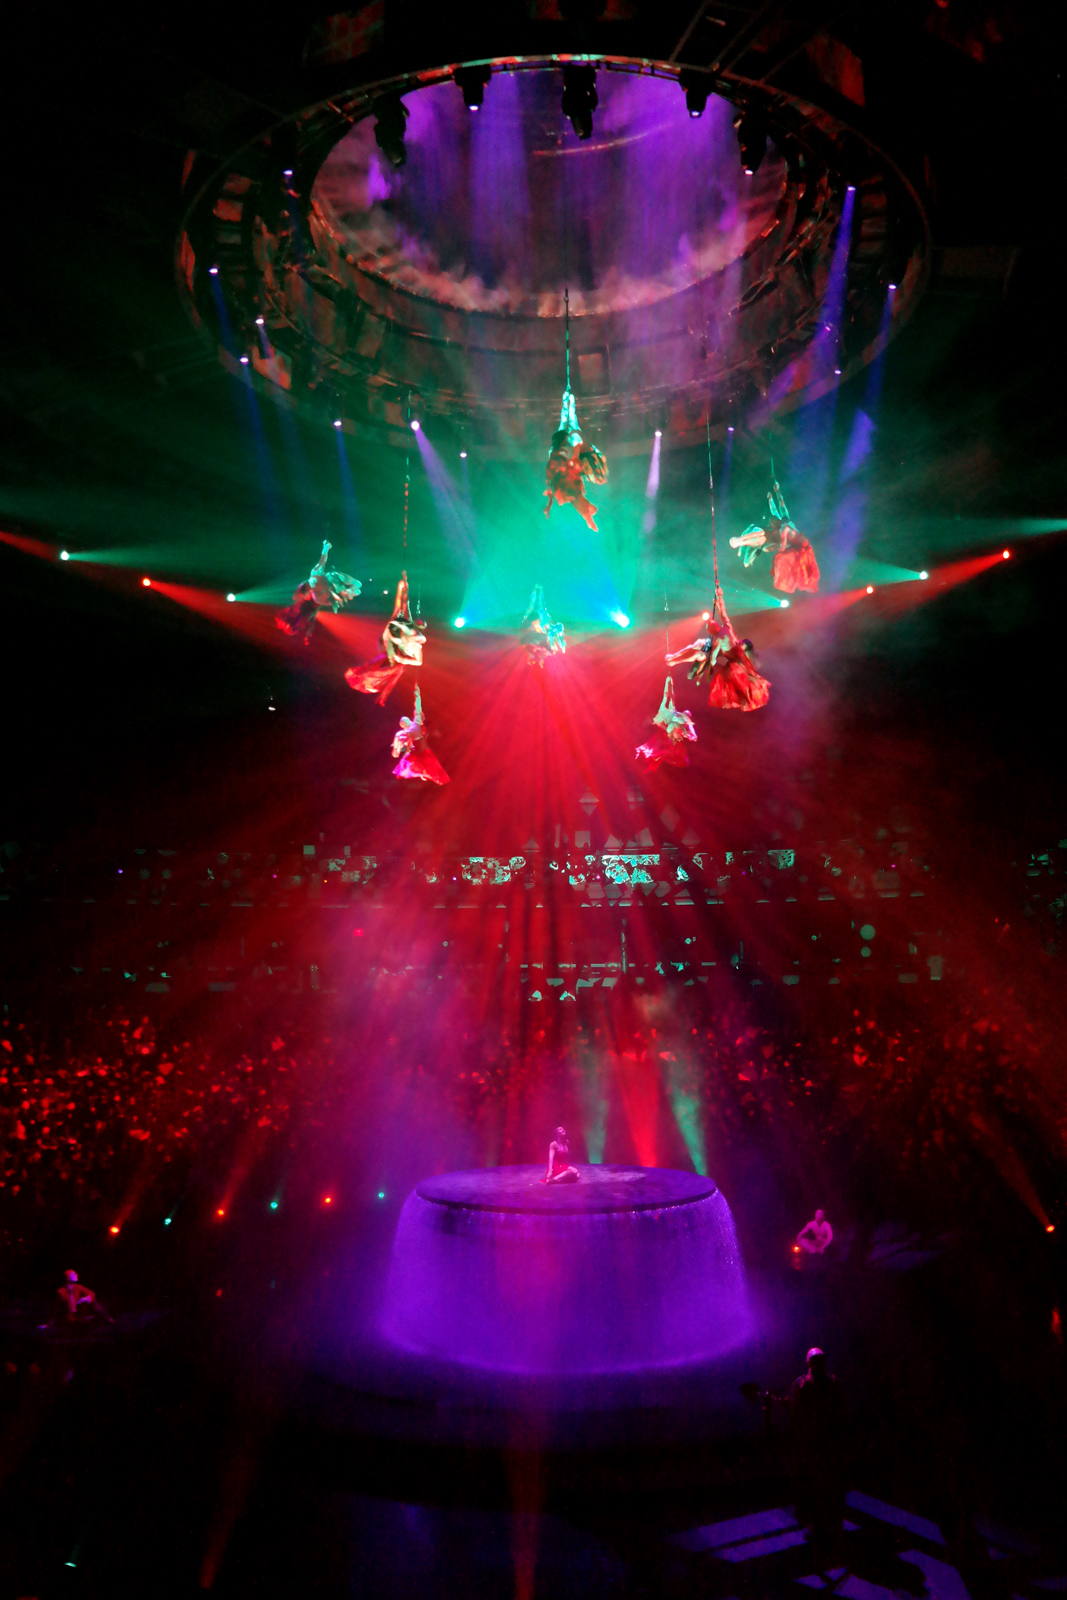 Performers acrobatics Le Rêve The Dream le reve show wynn las vegas Franco Dragone light water spectacle avis imagelogger photo by united states of paris blog